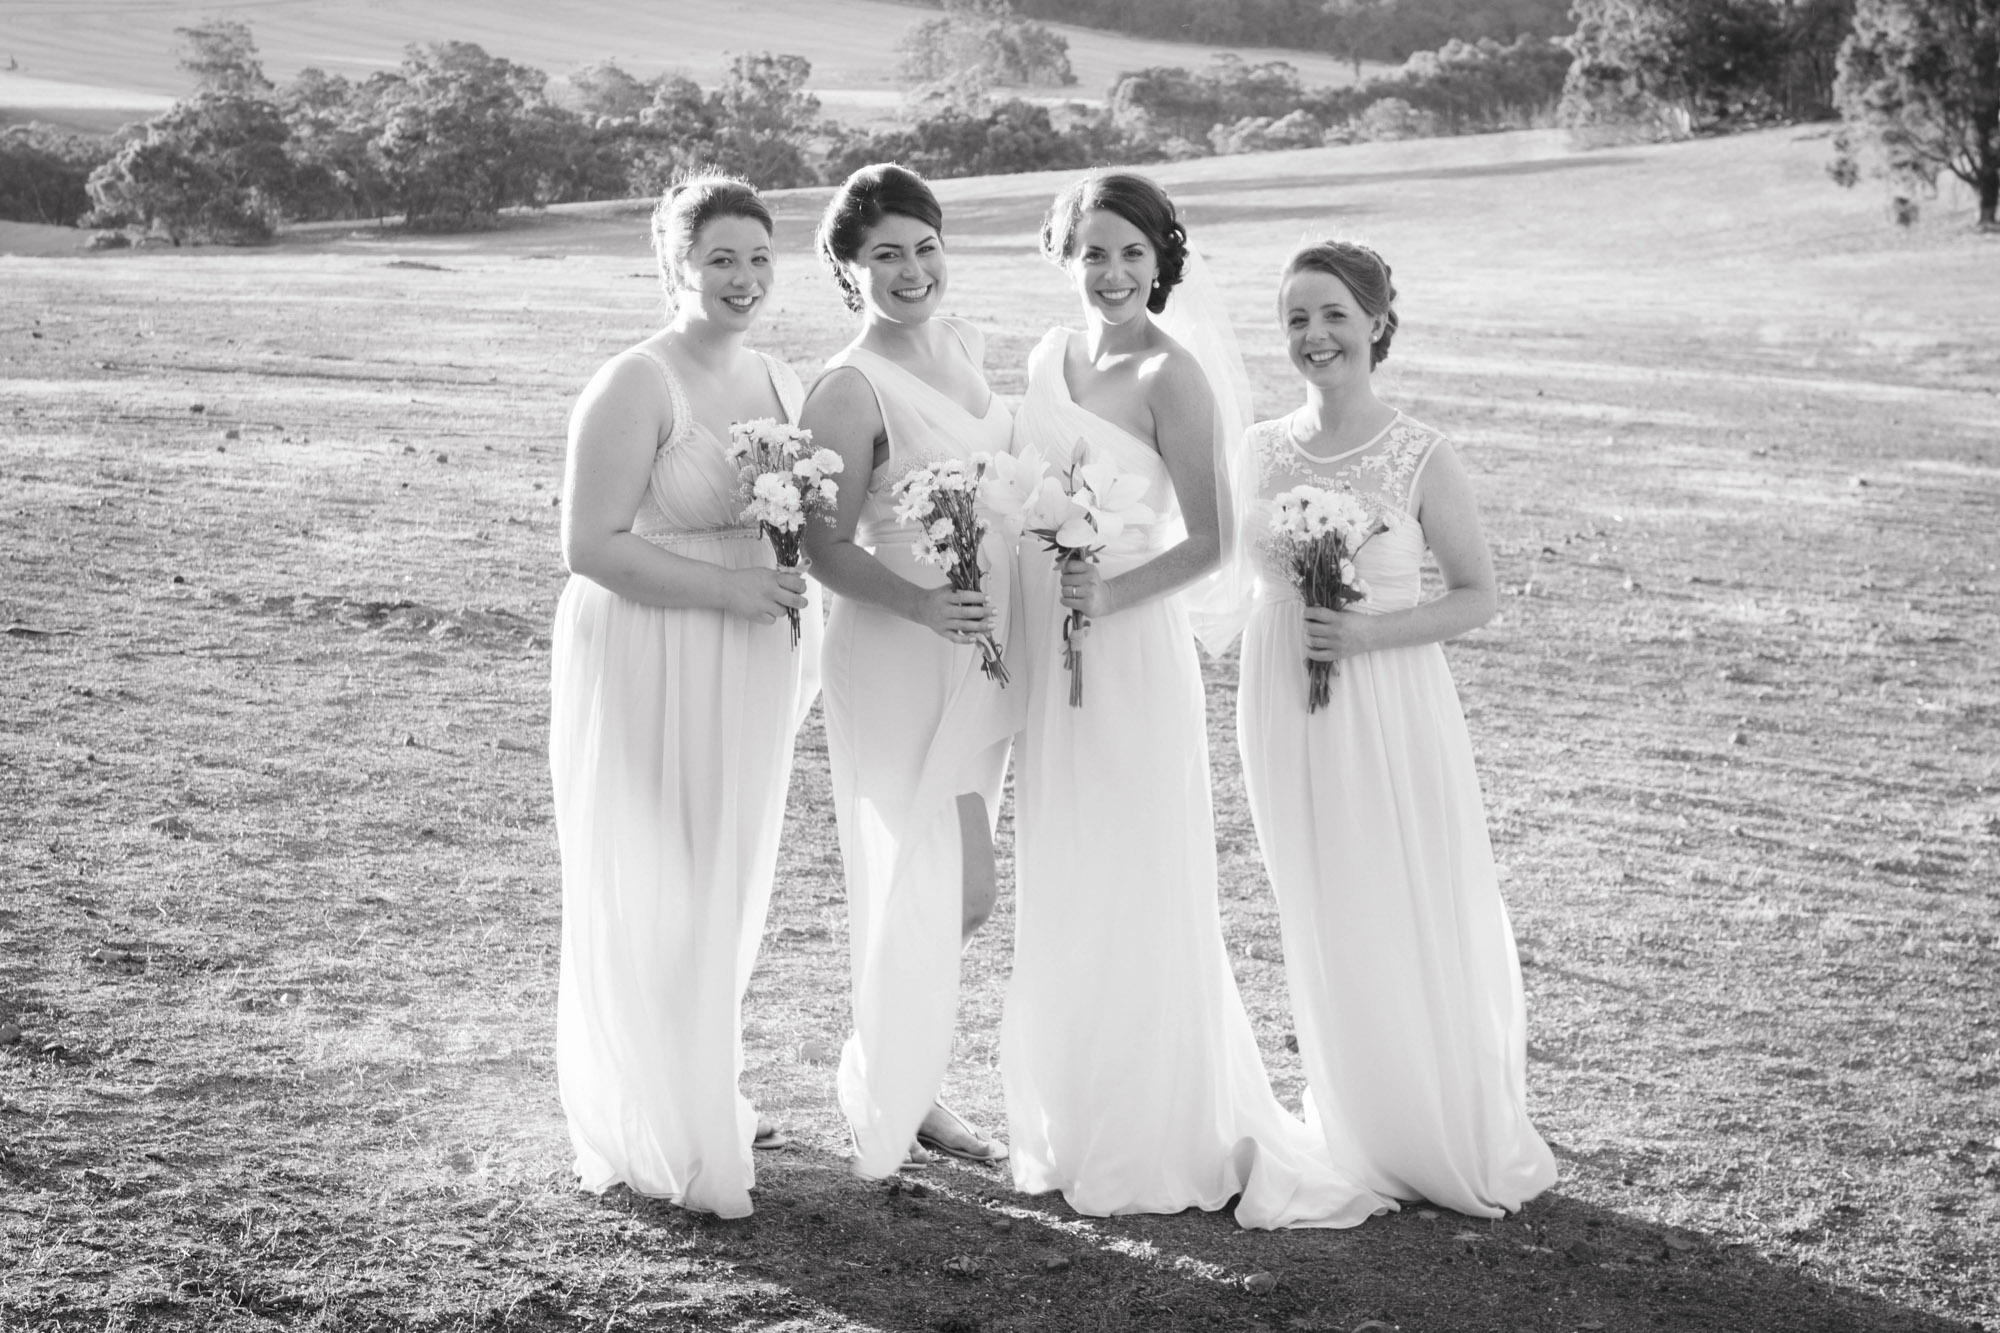 Angie-Roe-Photography-Wedding-Perth-Northam-Wheatbelt-Country-Rural (73).jpg